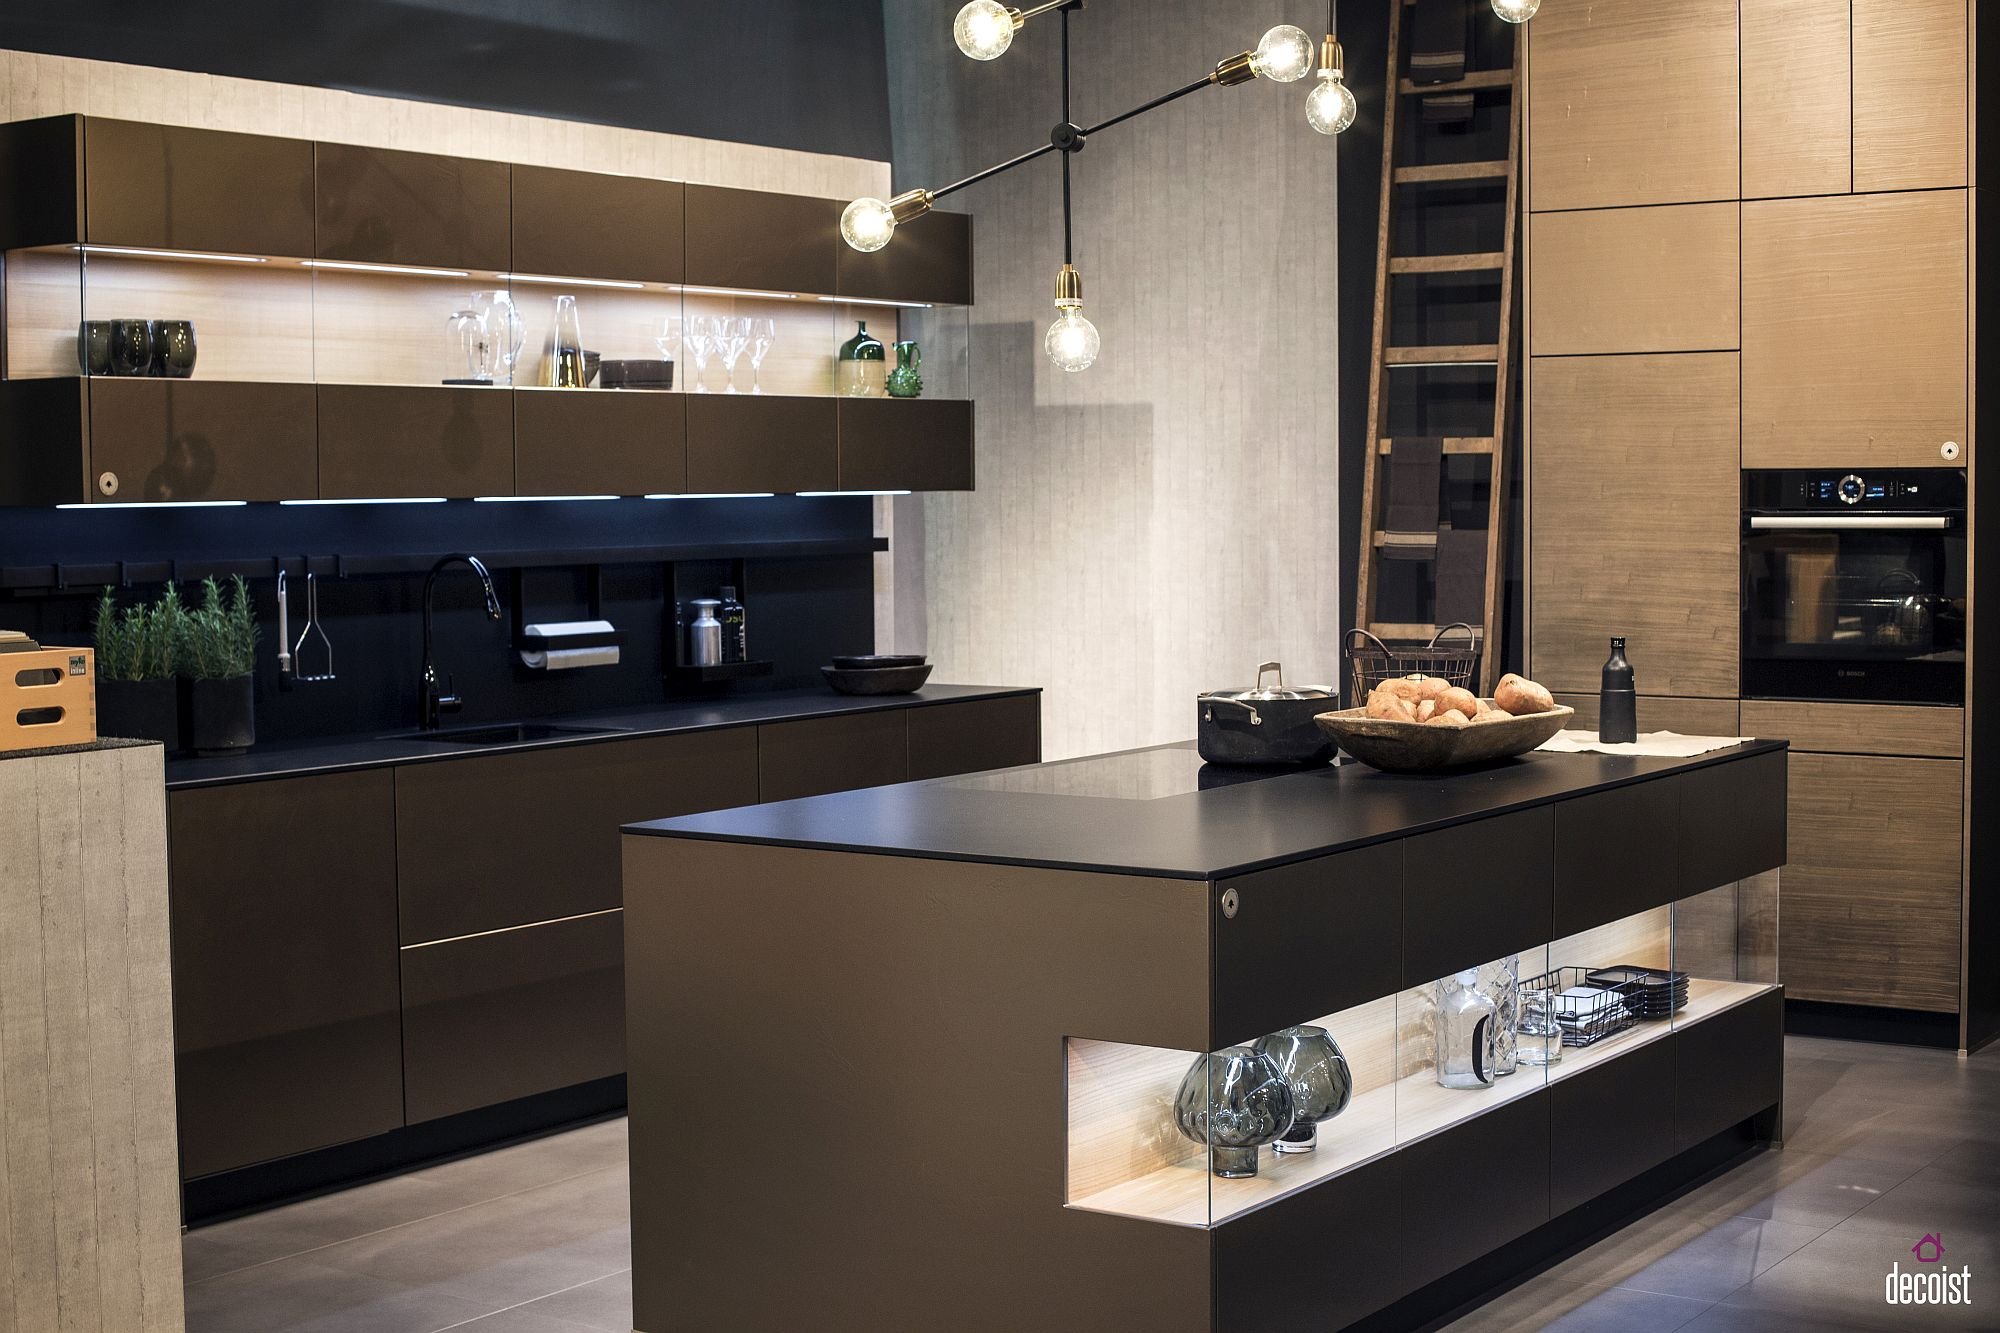 Illuminated open shelf in the island adds uniqueness to the kitchen in black